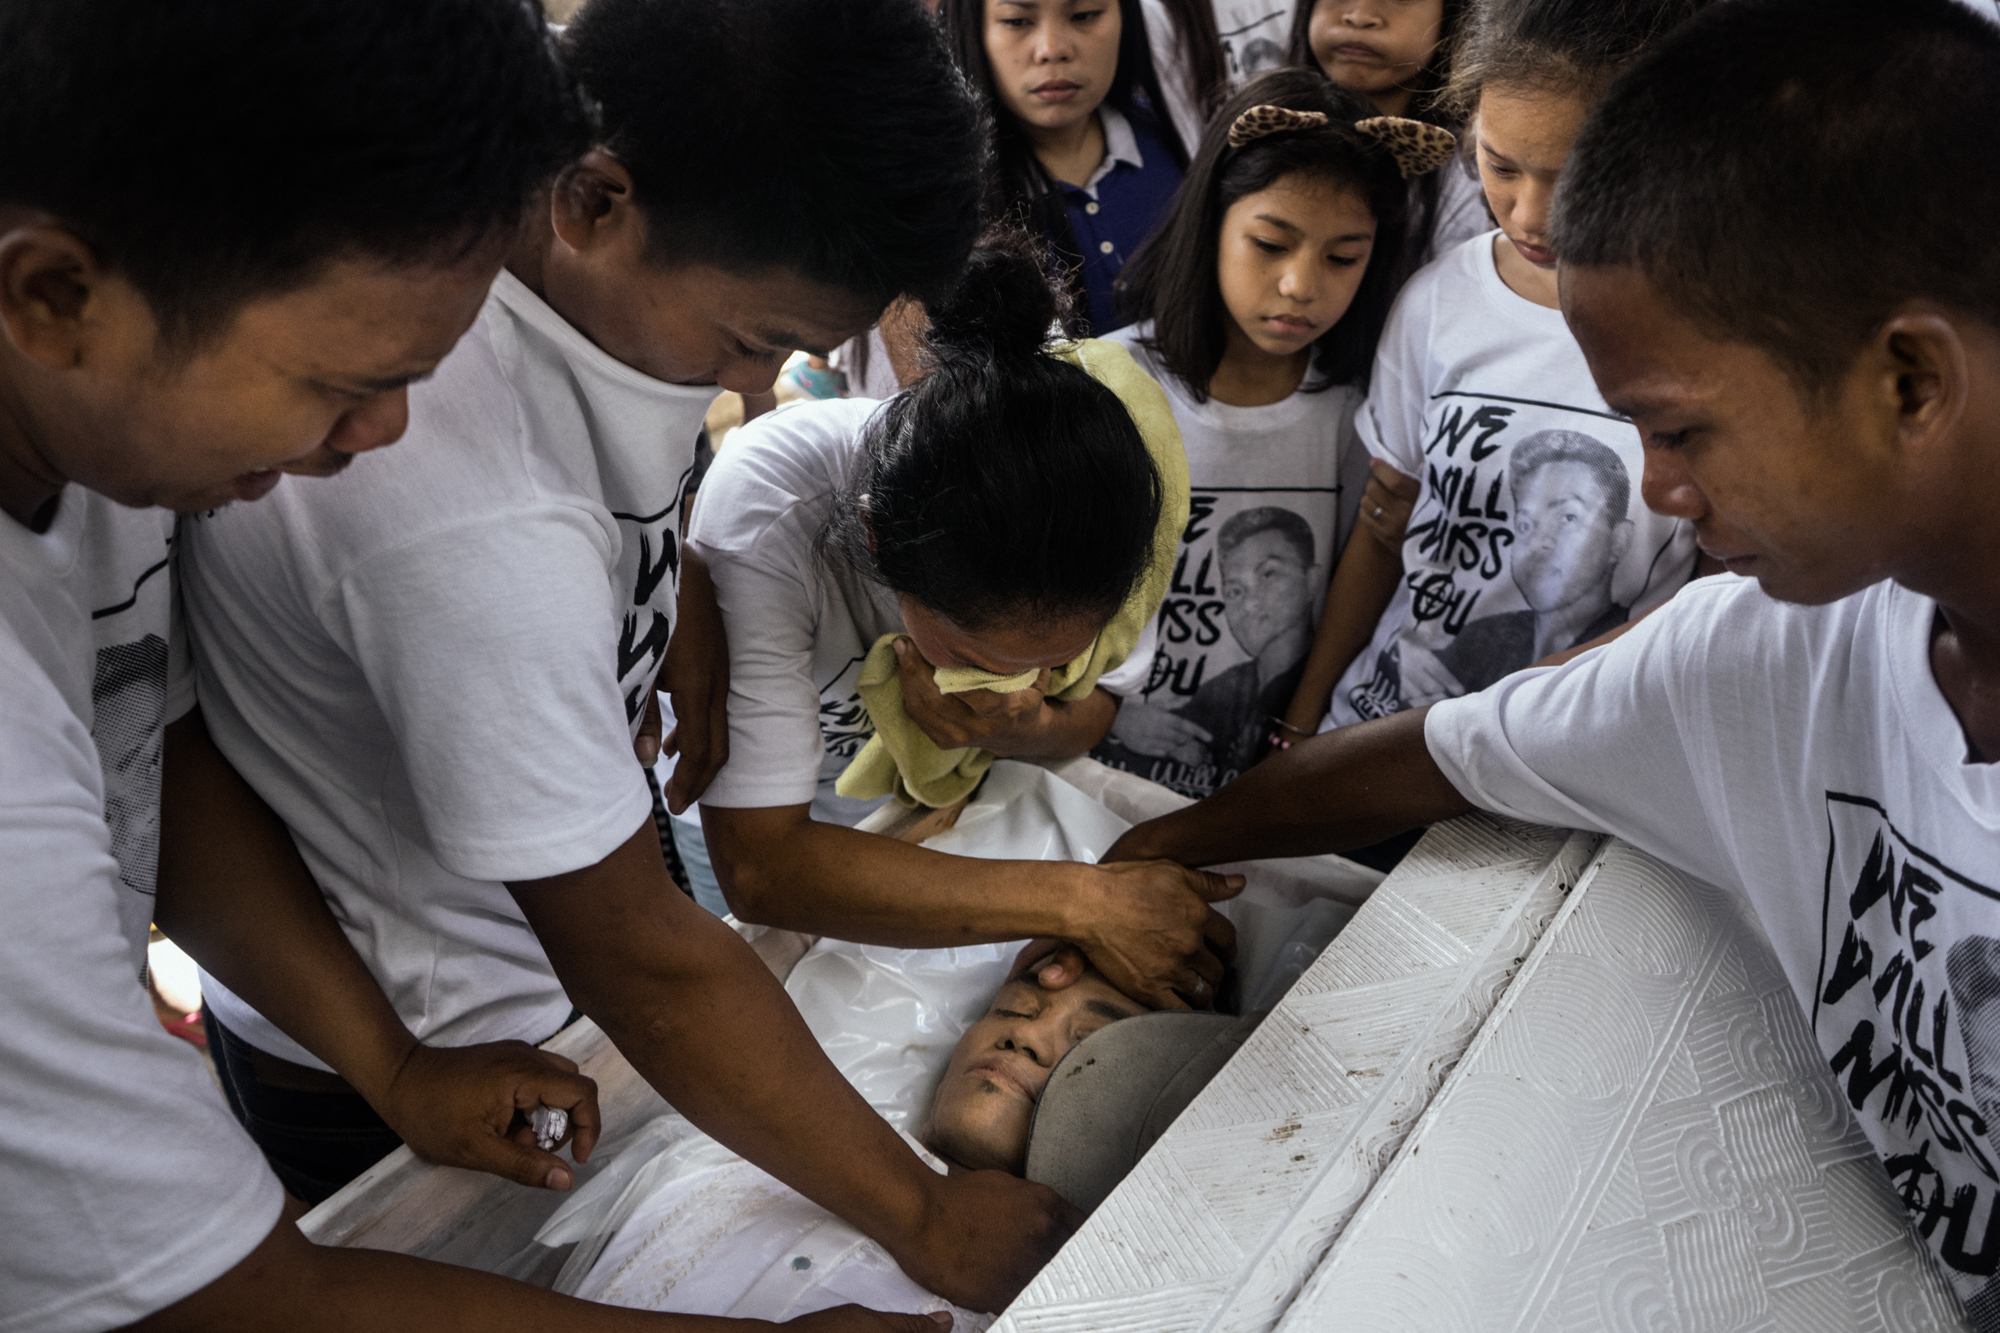 Relatives of Jhay Lord Clemente, a victim of President Rodrigo Duterte's 'War on Drugs' weep at his burial on Sunday, September 18, 2016, South of Manila, Philippines. Jhay Lord was gunned down together with his girlfriend, and scavenged trash for a living.